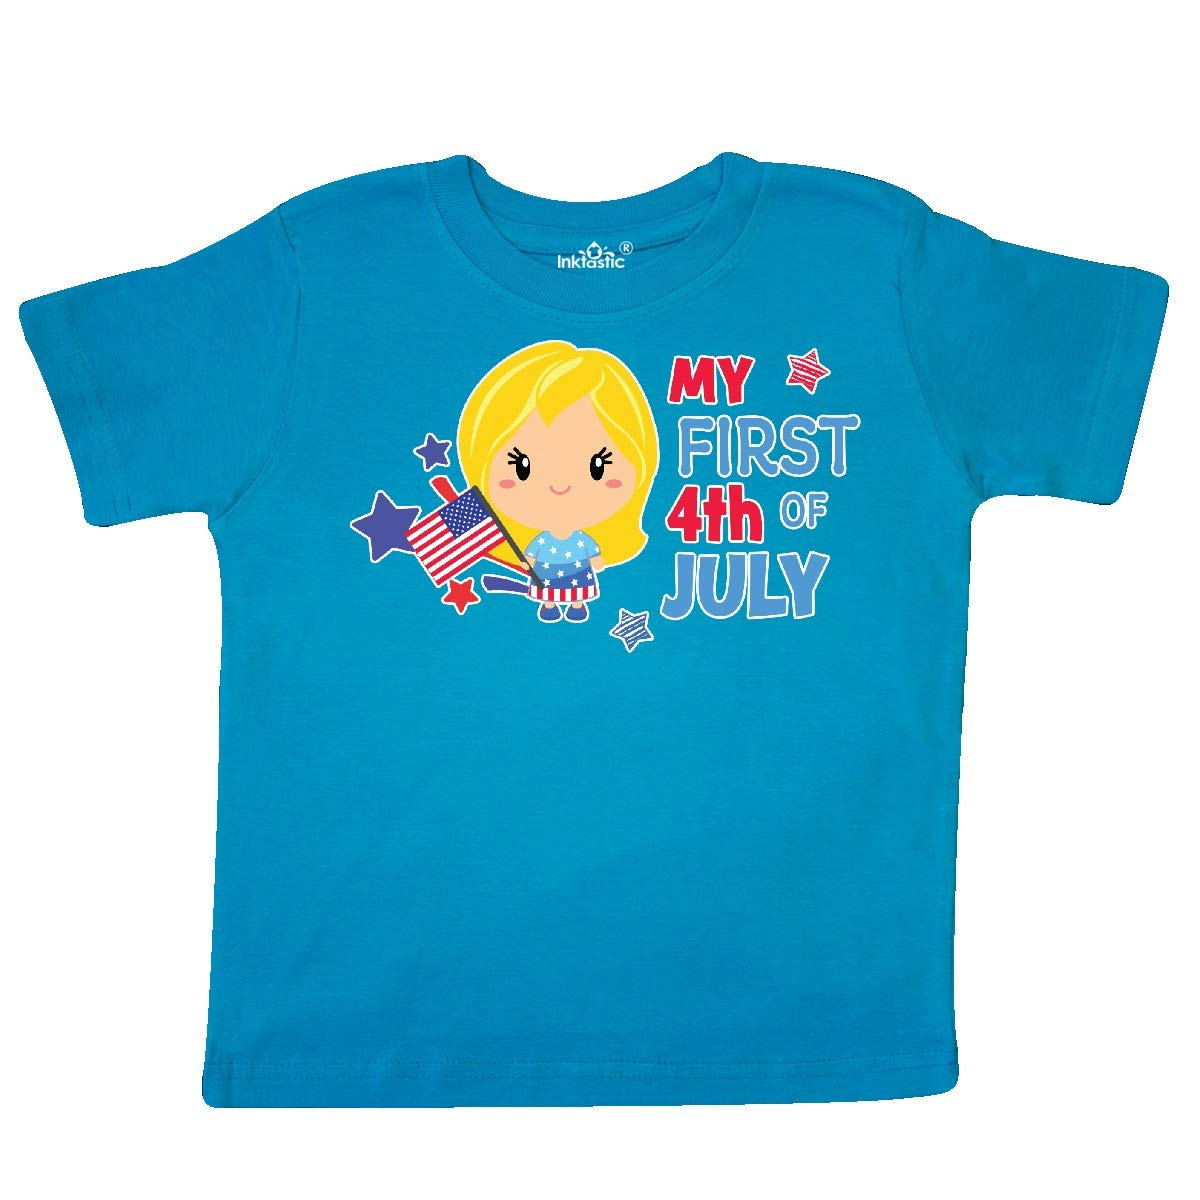 inktastic My First 4th of July with Blonde Haired Girl Stars and Toddler T-Shirt